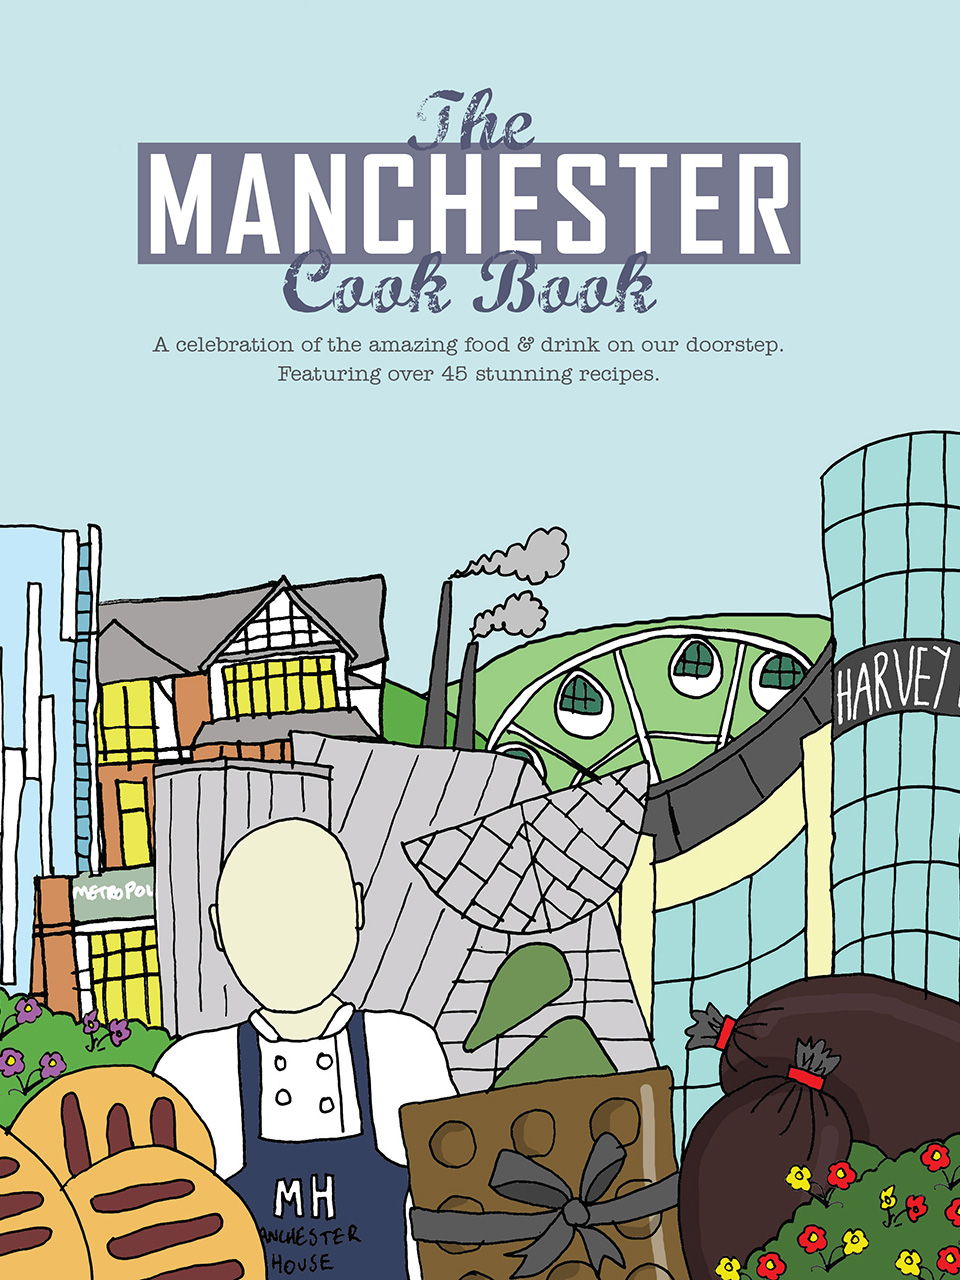 The Manchester Cook Book